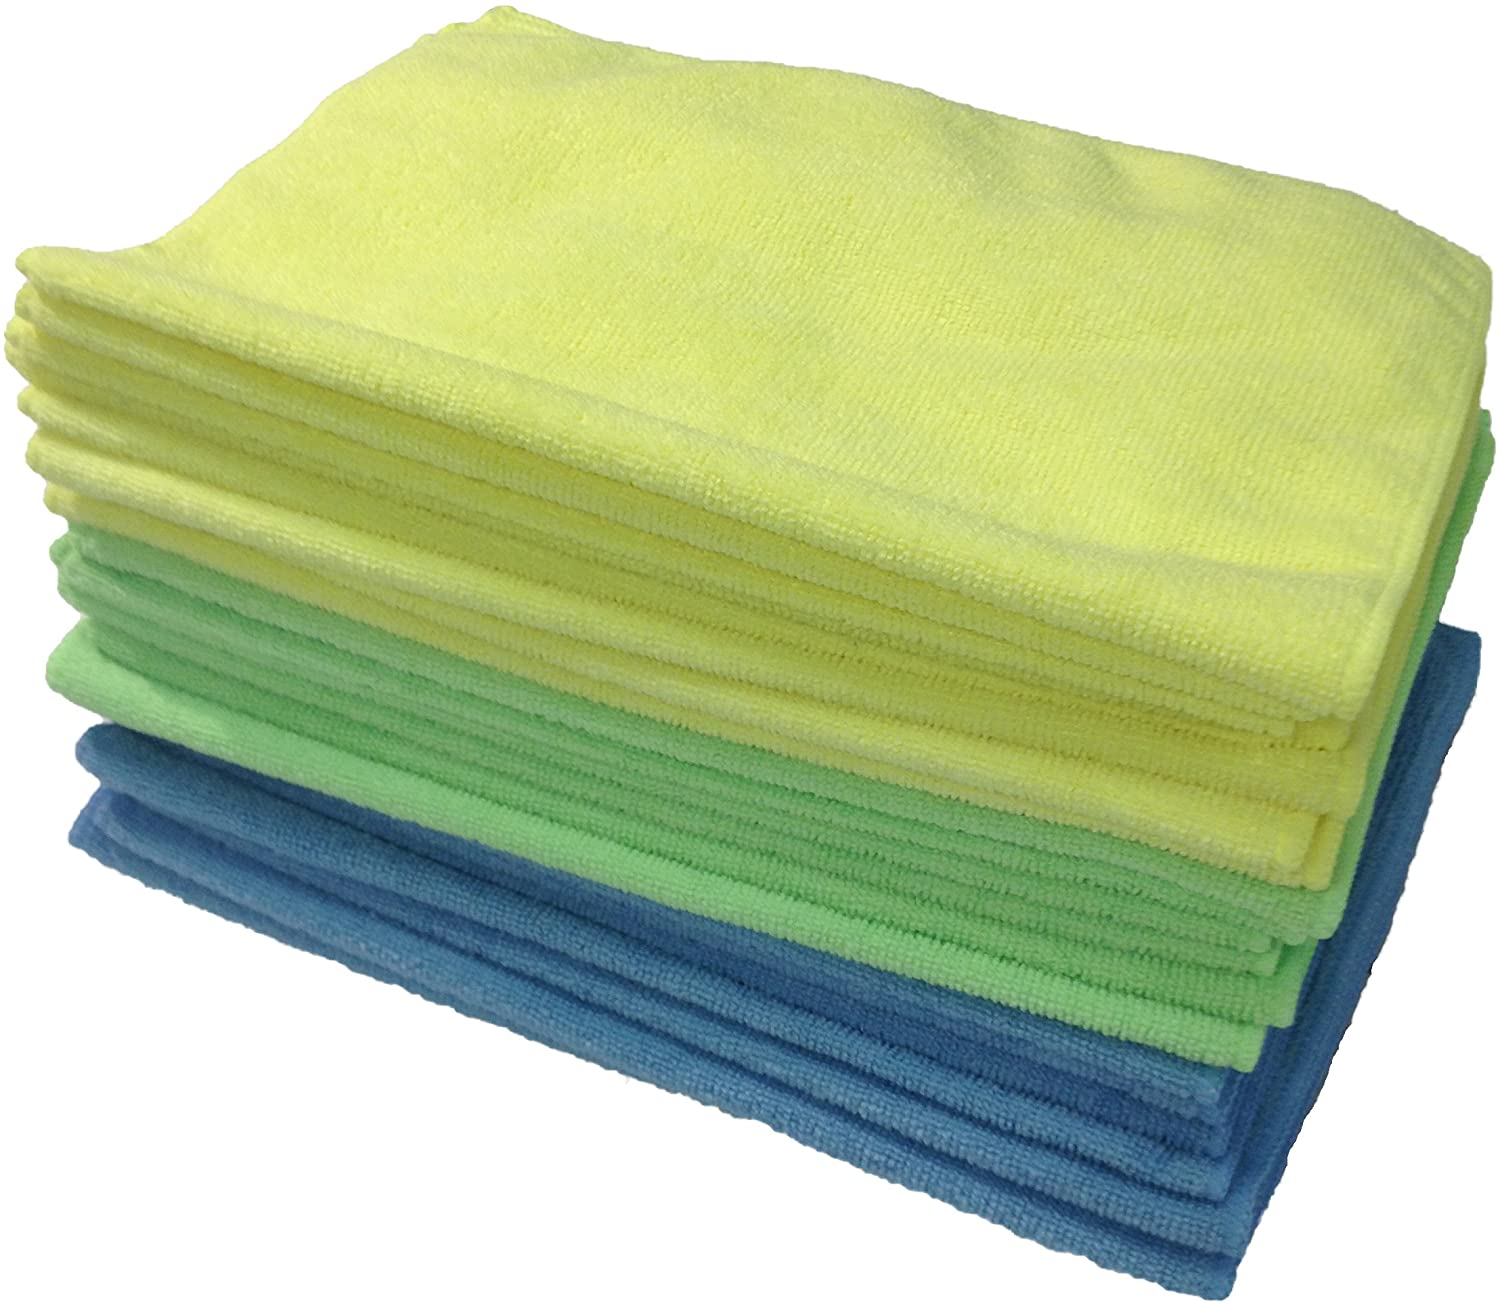 Zwipes Microfiber Cleaning Cloths & Drying Towel - 12 in. x 16 in. (24-Pack)